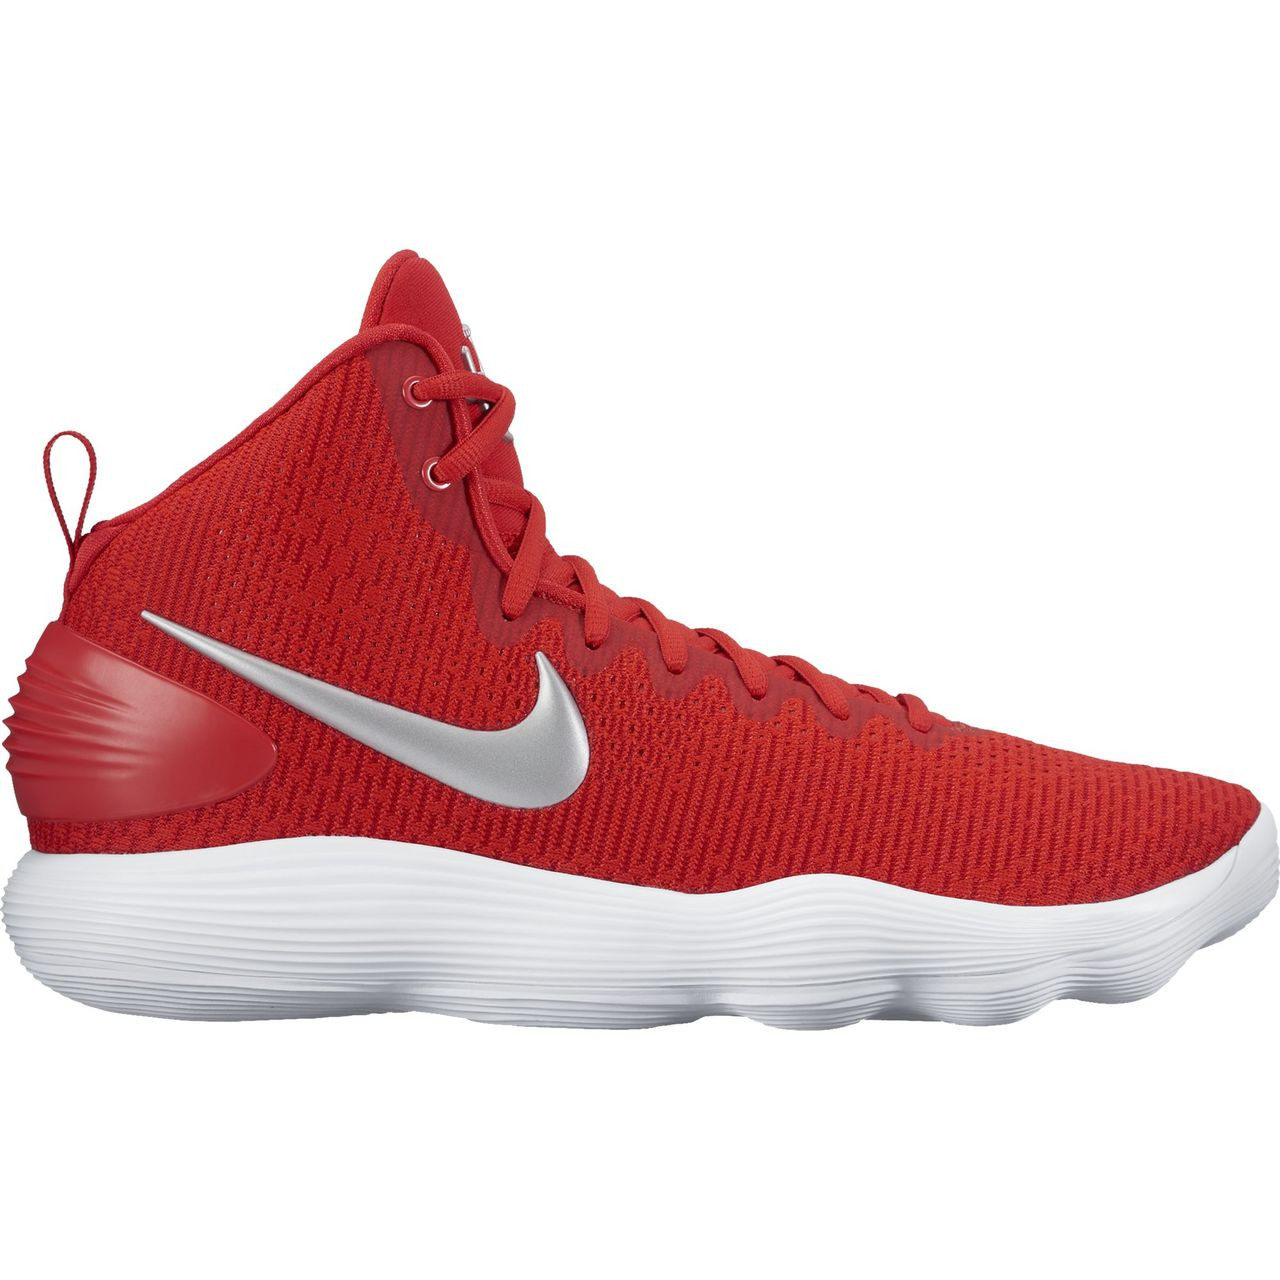 NIKE Mens Hyperdunk 2016 TB Basketball Shoes Red 844368 662 Size 11.5